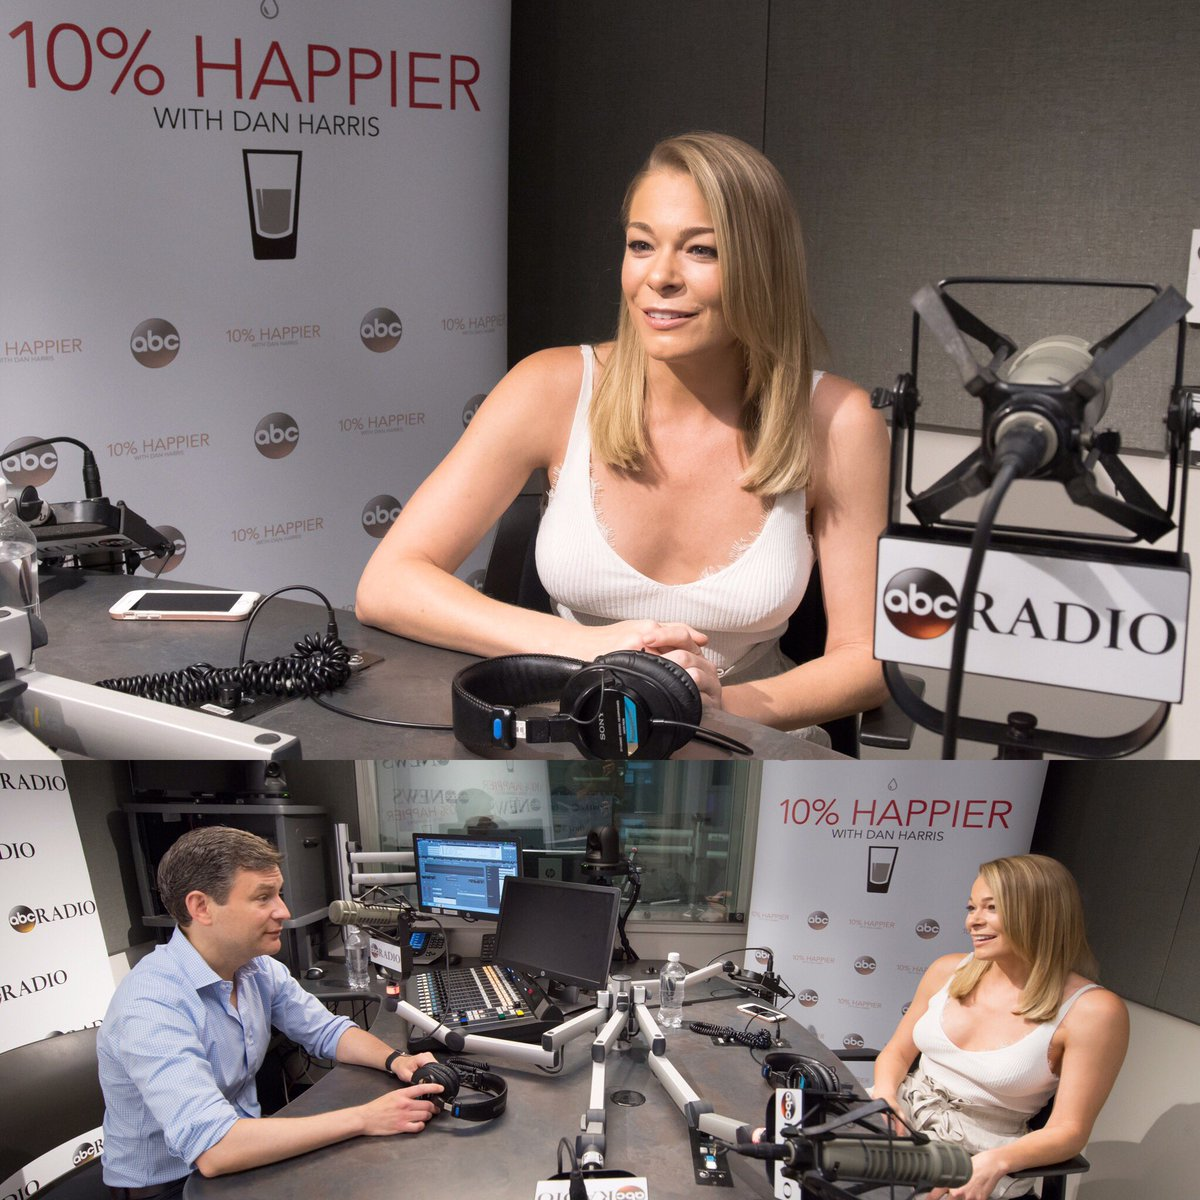 Get ready my LovEs as tomorrow's #WhollyHuman episode is a big one. It's been over three years since I joined @danbharris on his @10percent  Podcast and now the tables have turned and I am honored to have him on mine. Subscribe now if you haven't already ~